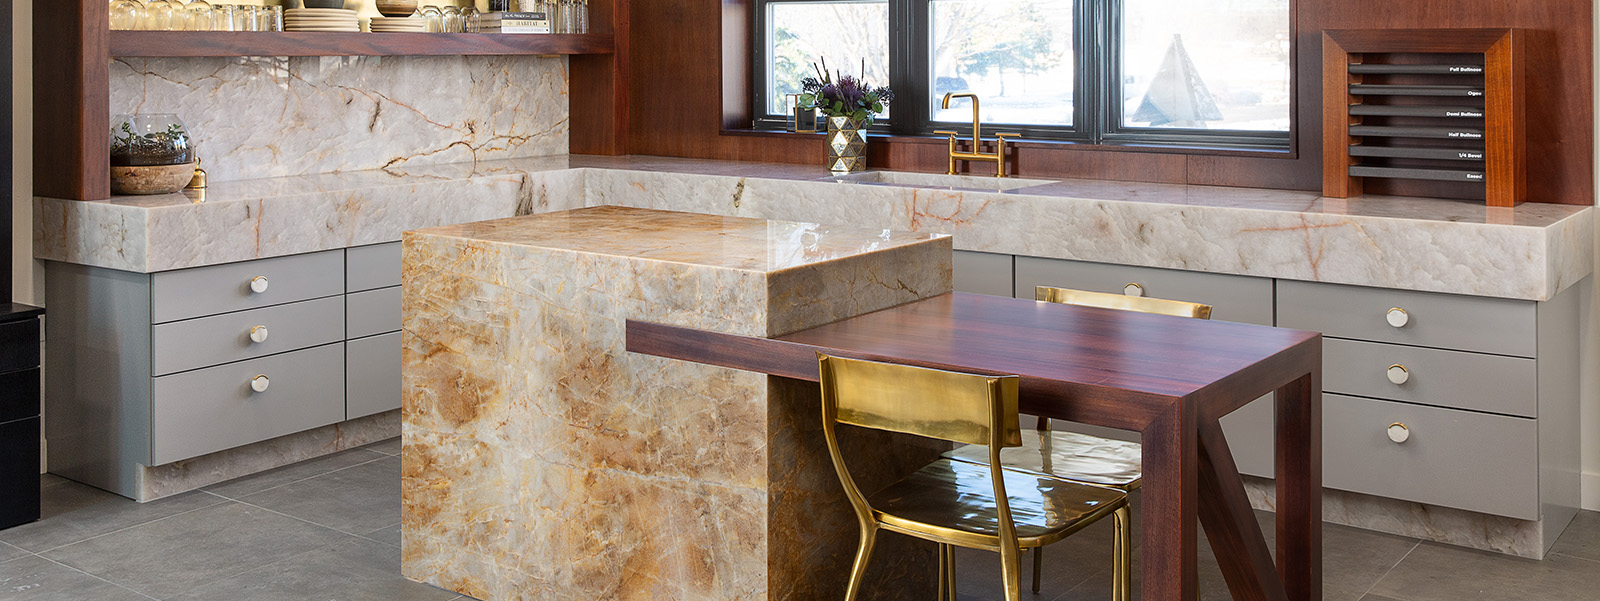 The Quality of Quartzite